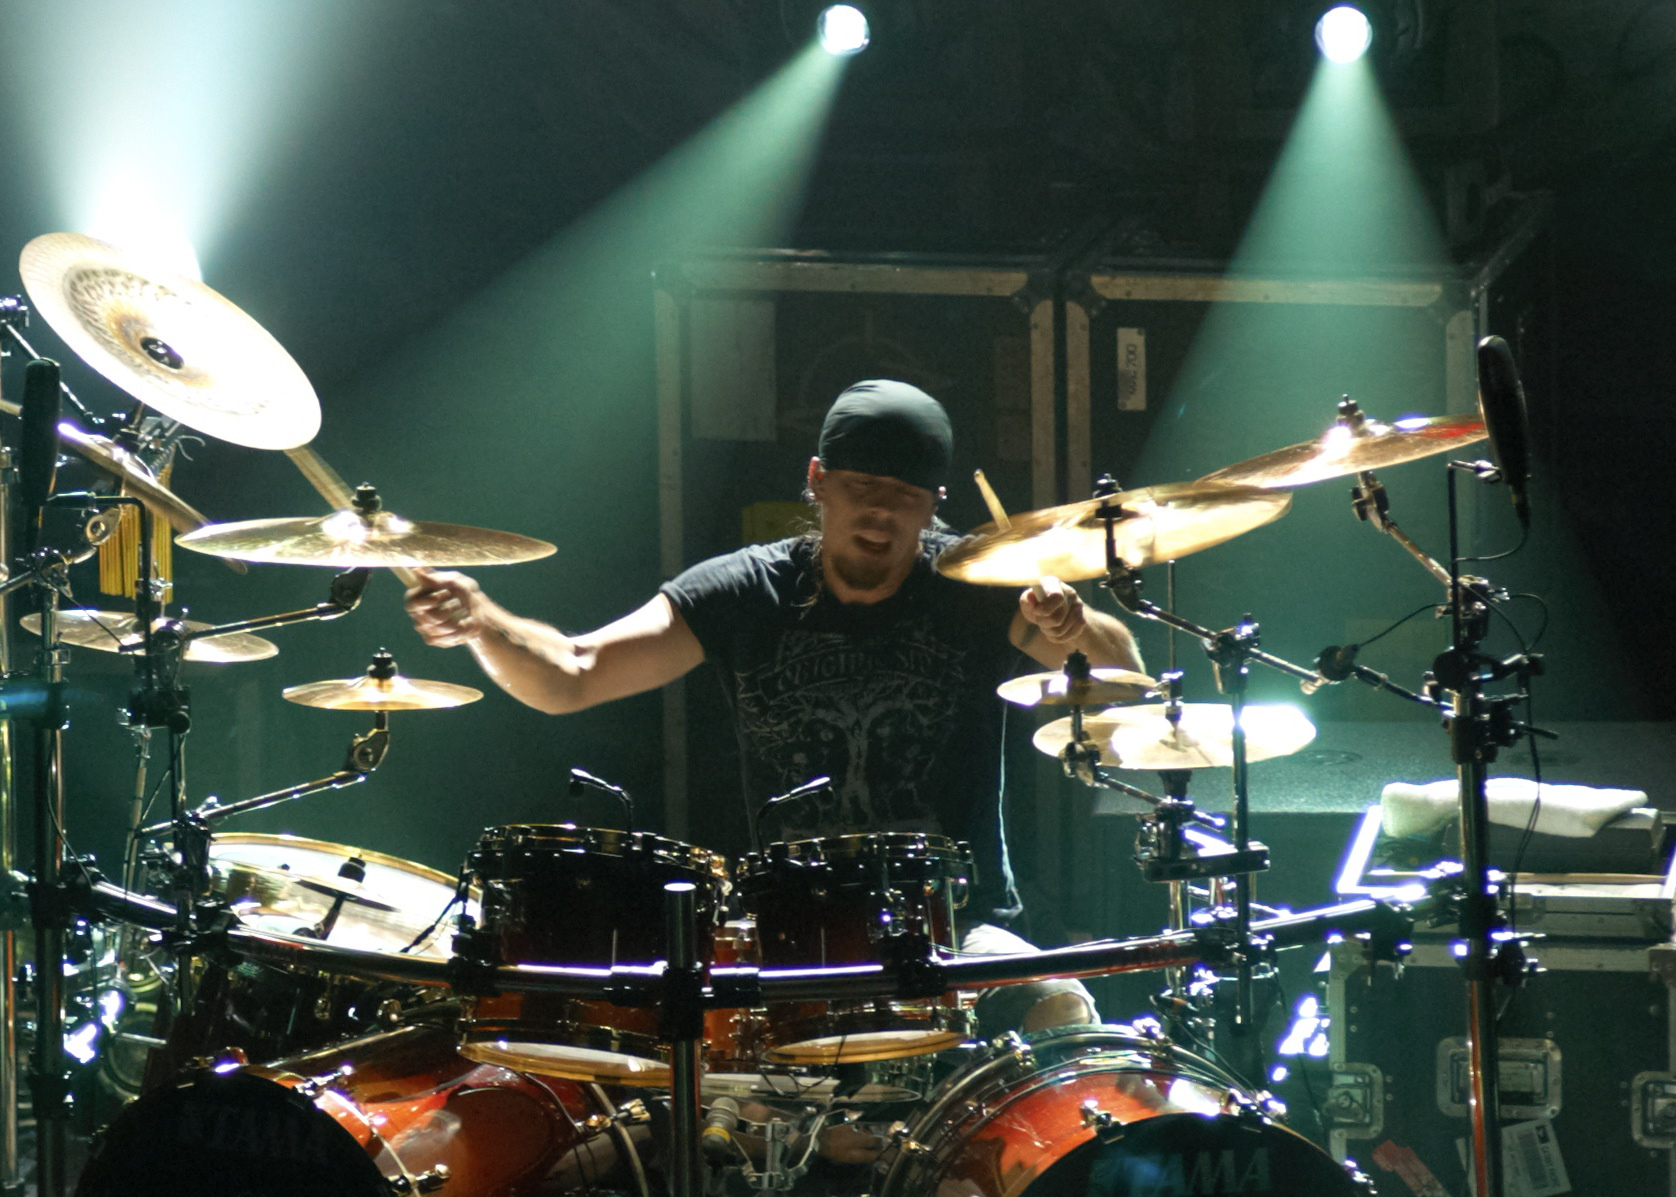 http://upload.wikimedia.org/wikipedia/commons/2/2c/Jukka-Nevalainen-drums.jpg